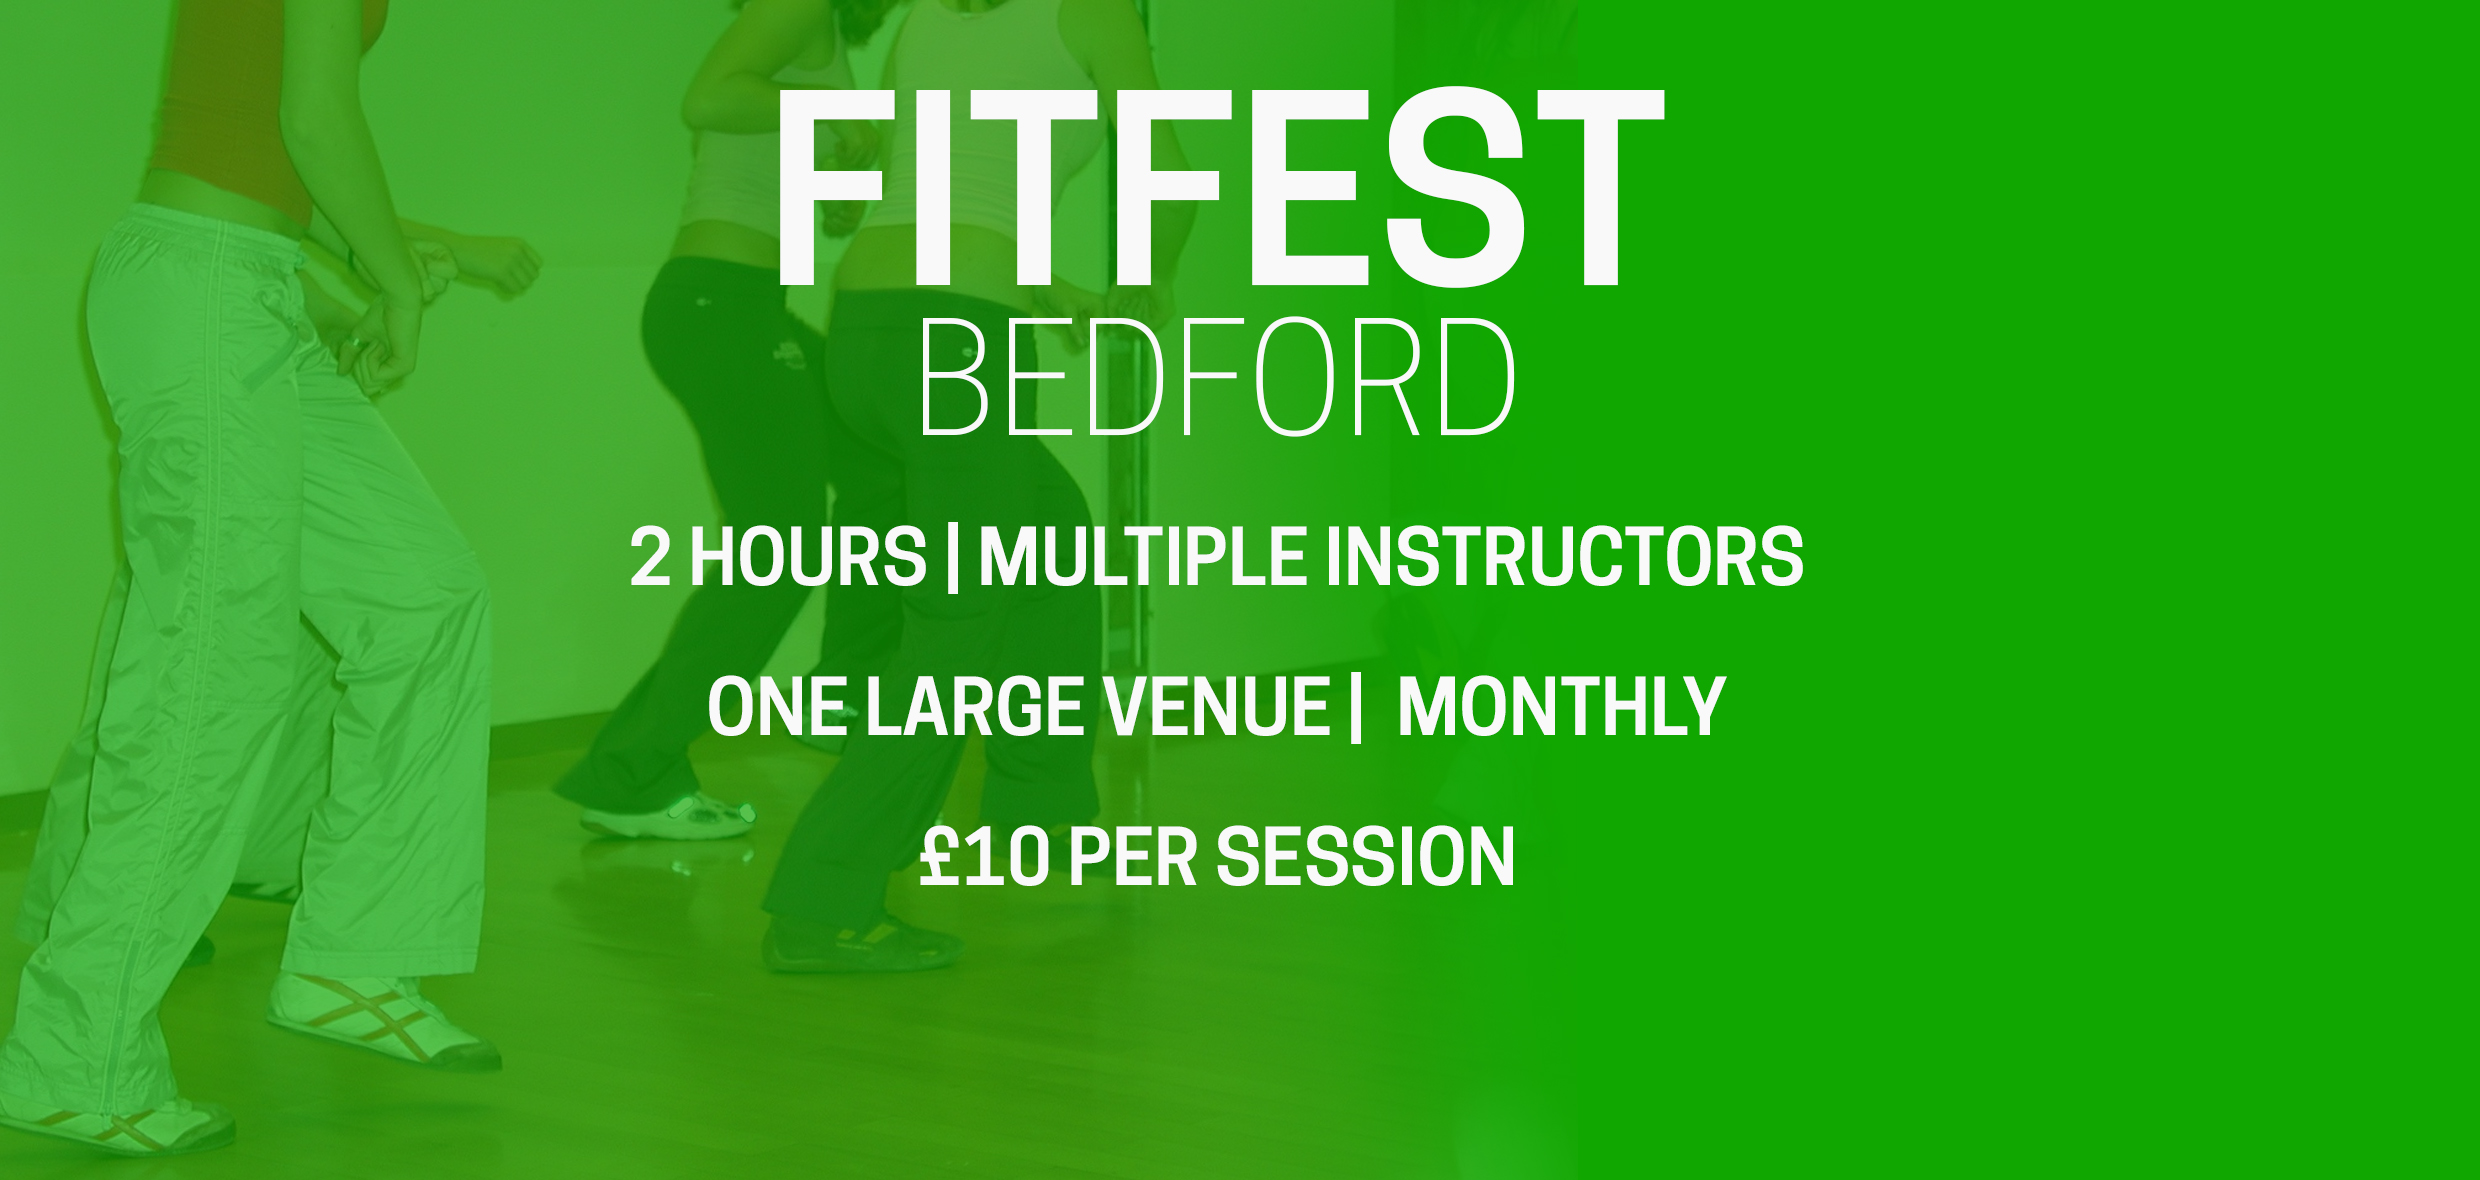 FitFest Bedford (2 Hour Aerobics Session) at Bedford Corn Exchange